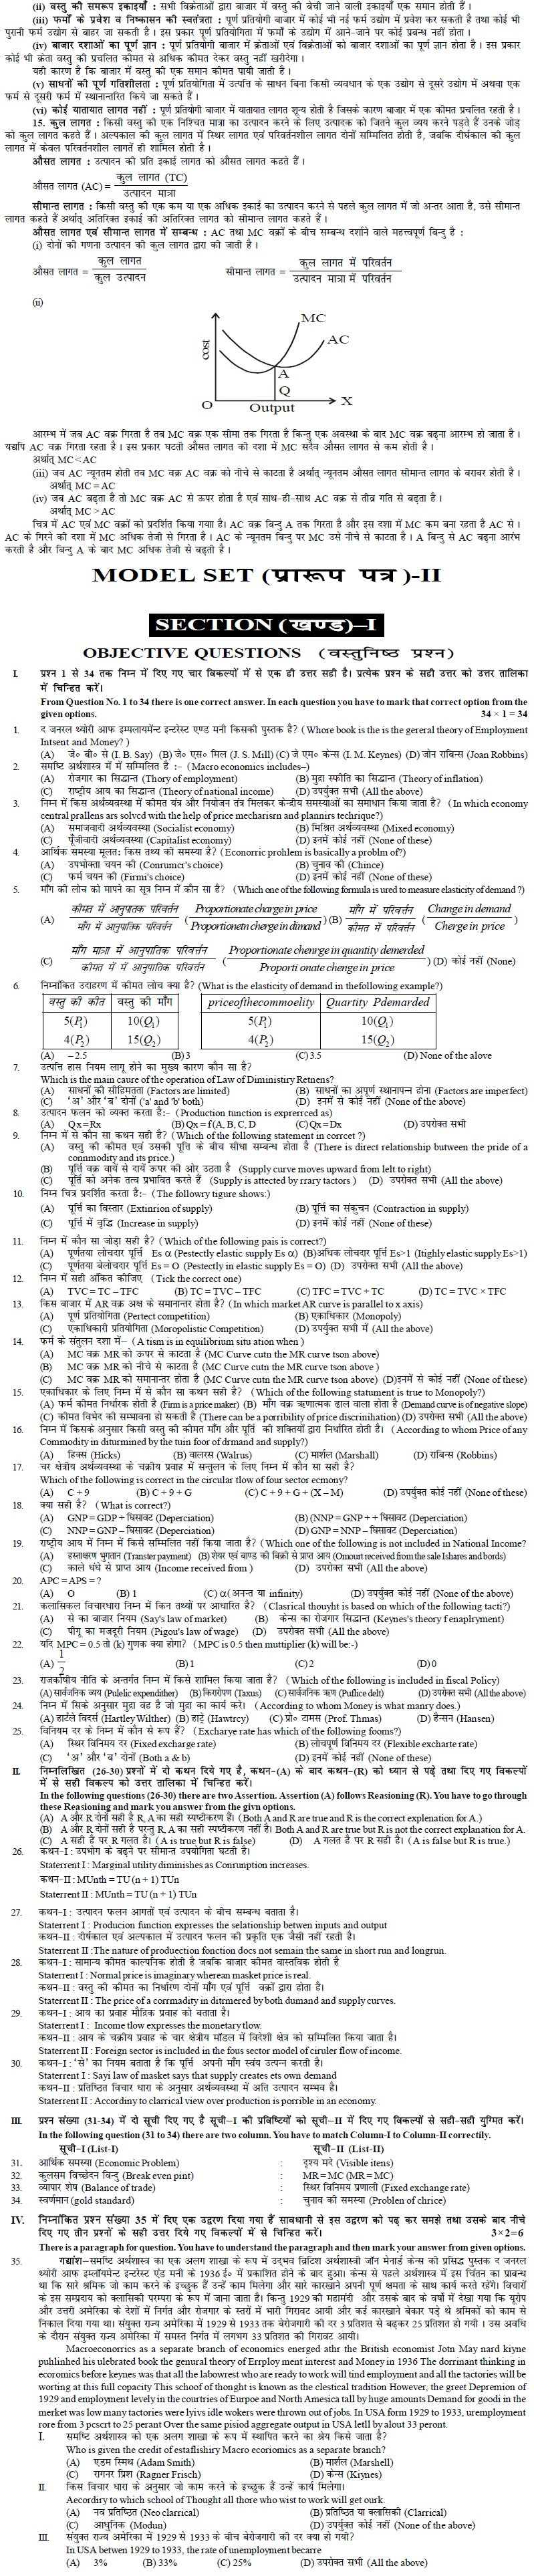 Bihar Board Class XII Arts Model Question Papers - Economics